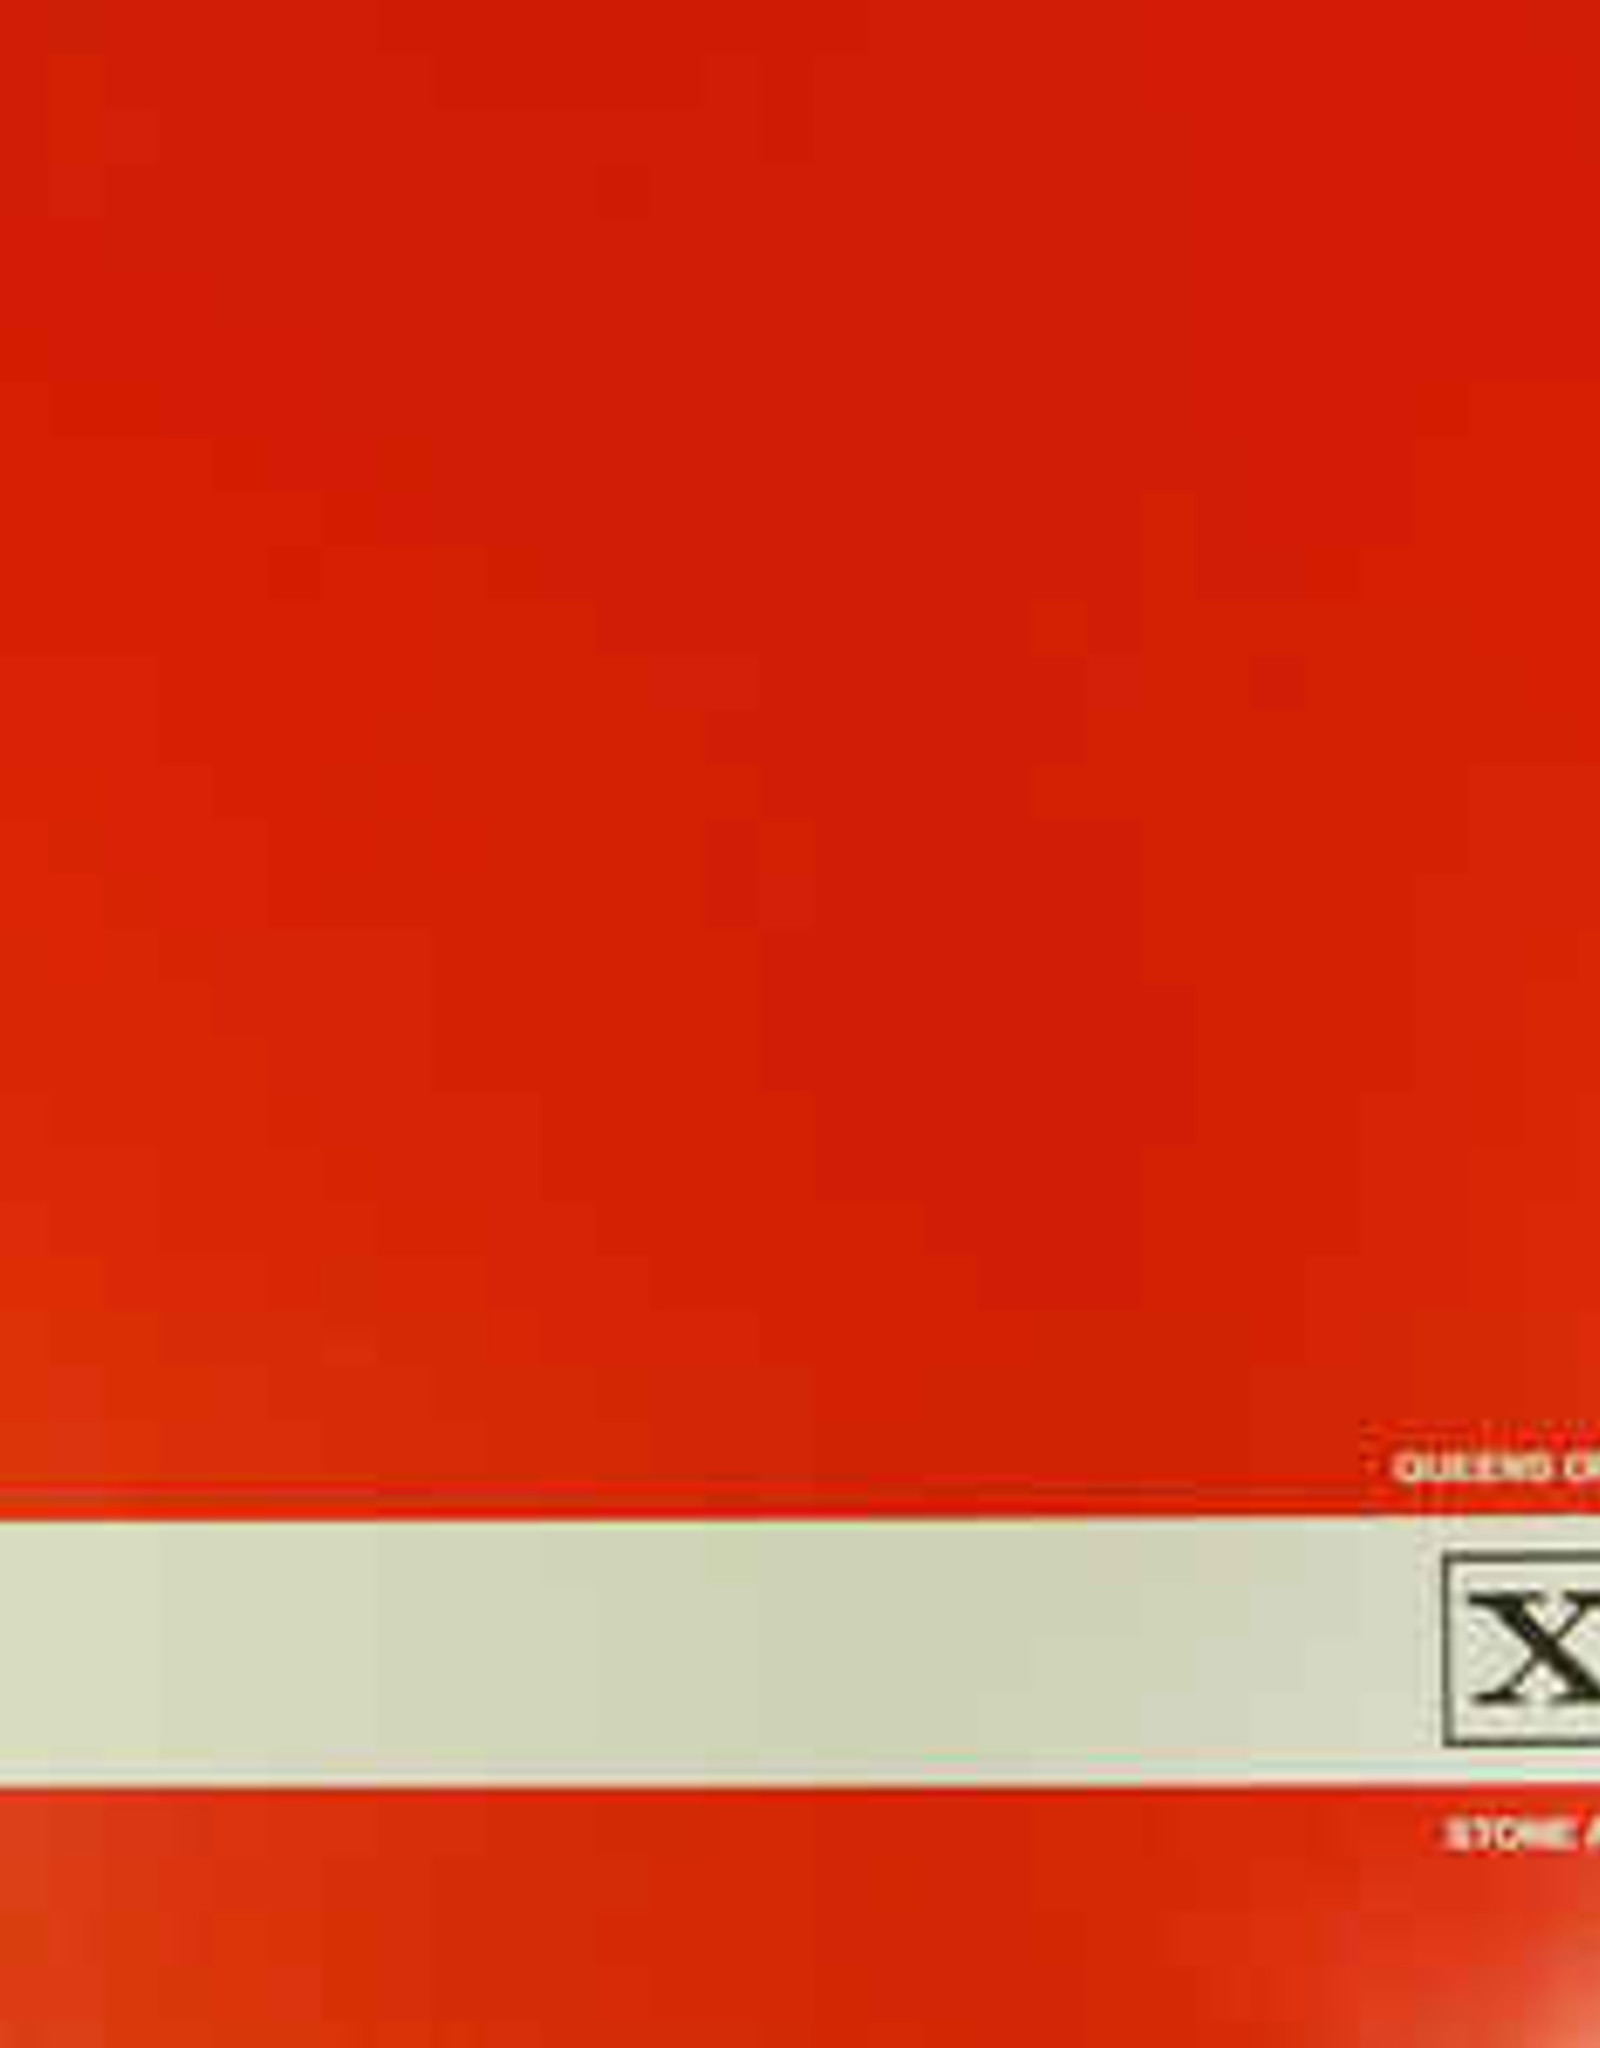 Queens Of The Stone Age - Rated R (180G) (X)